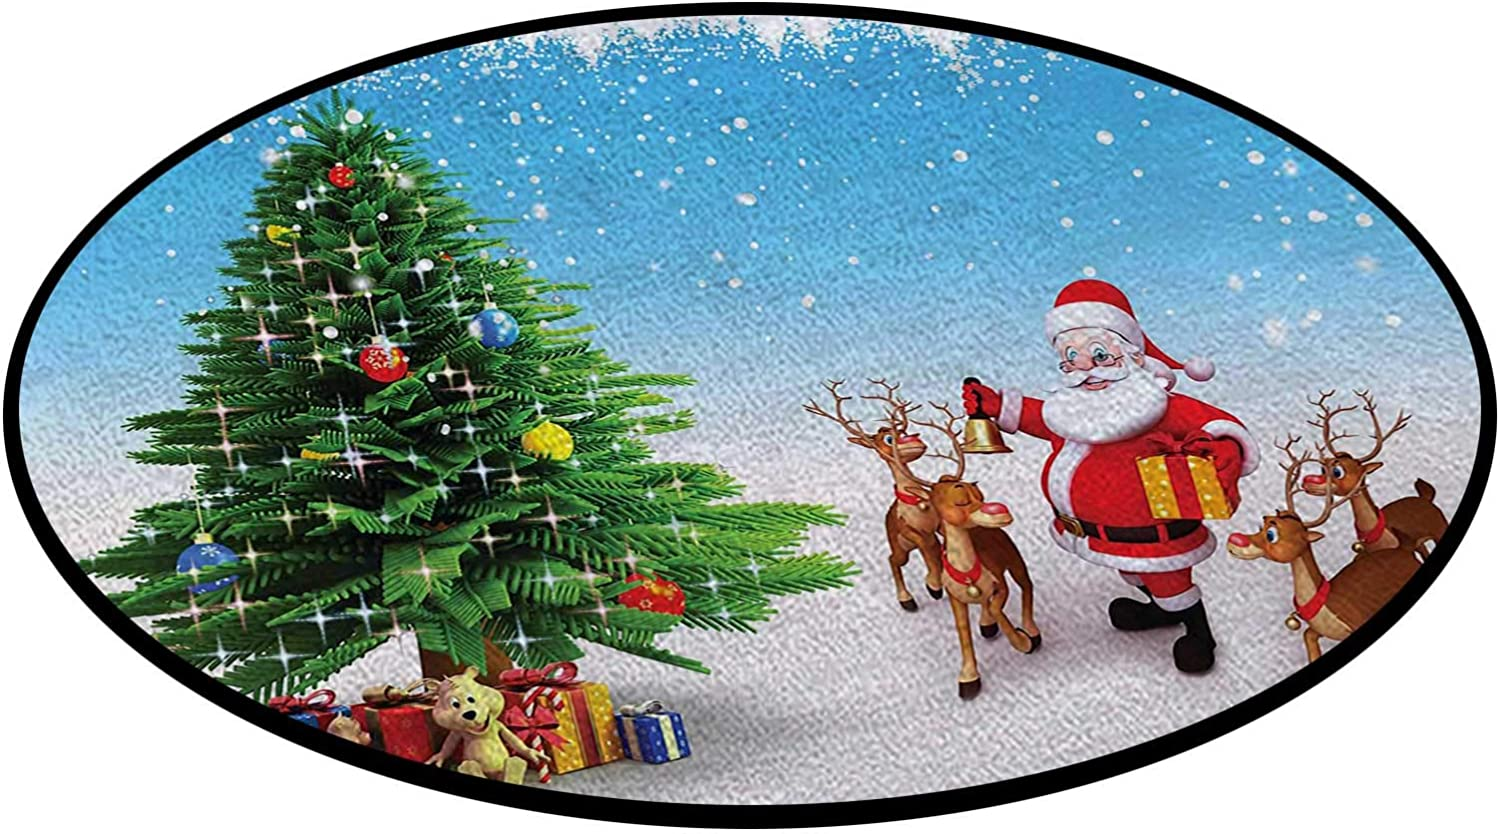 Jingle Bells Tree Office Swivel Chair Non-Slip Ba Throw Rugs Max 81% OFF Mat Challenge the lowest price of Japan